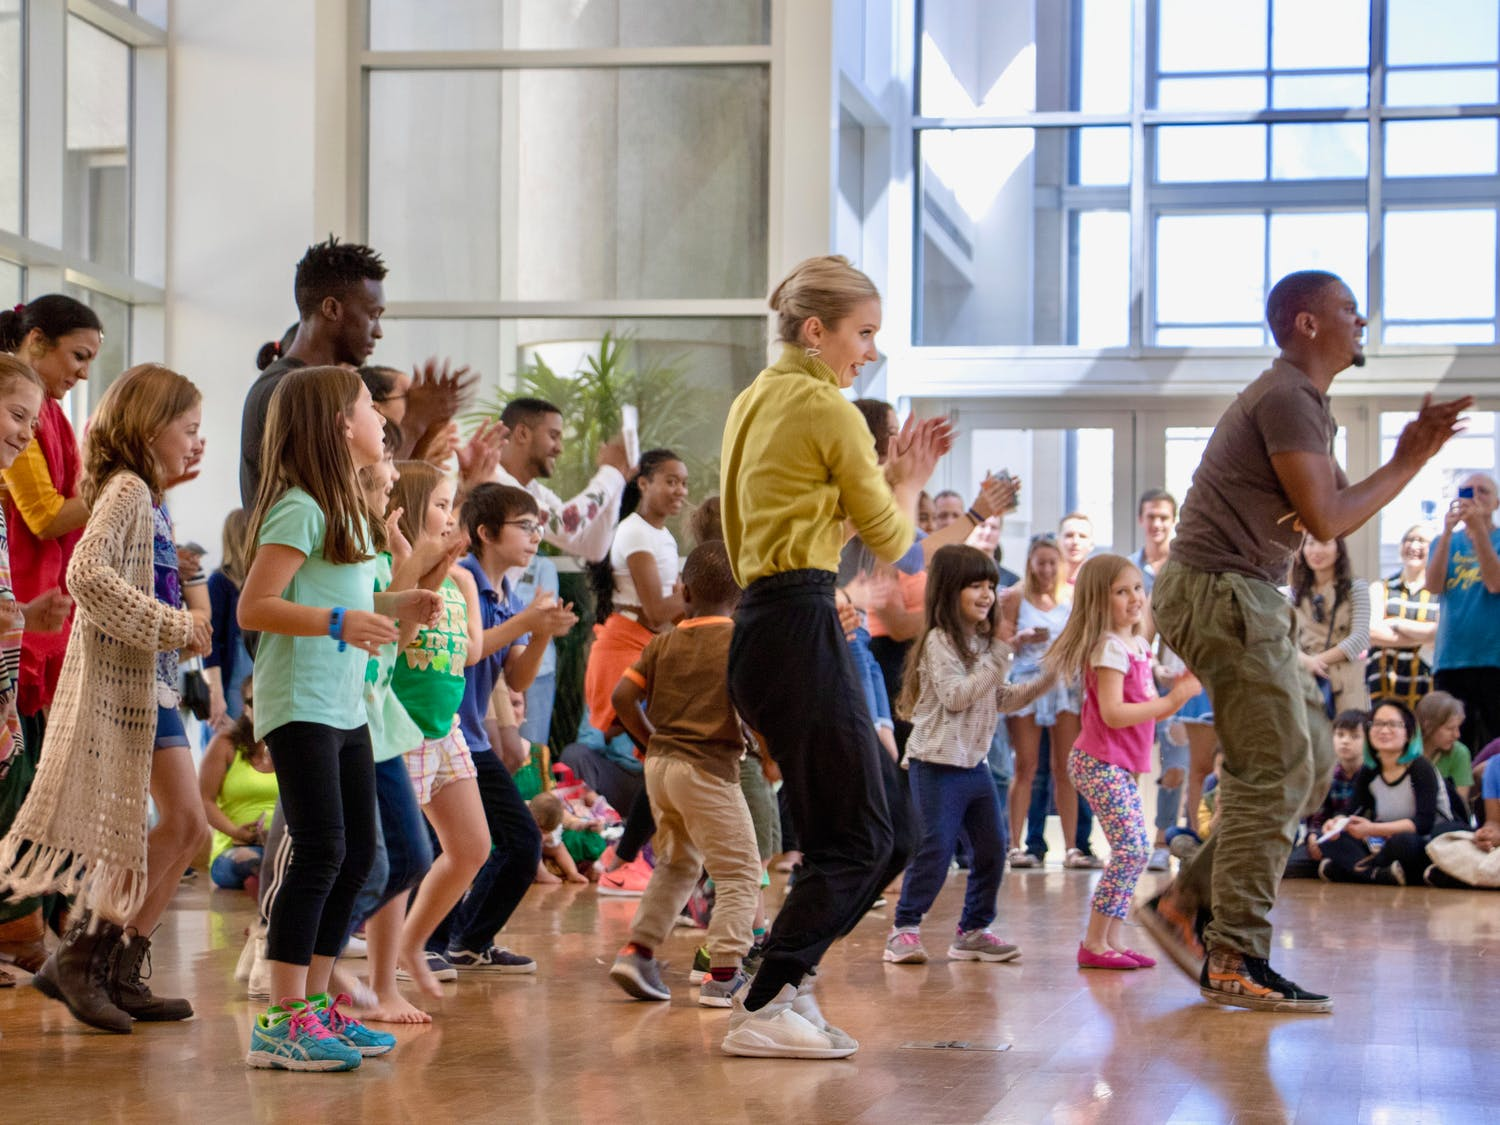 Photos from the Hip Hop Dance performance at the Harn Museum of Dance event.